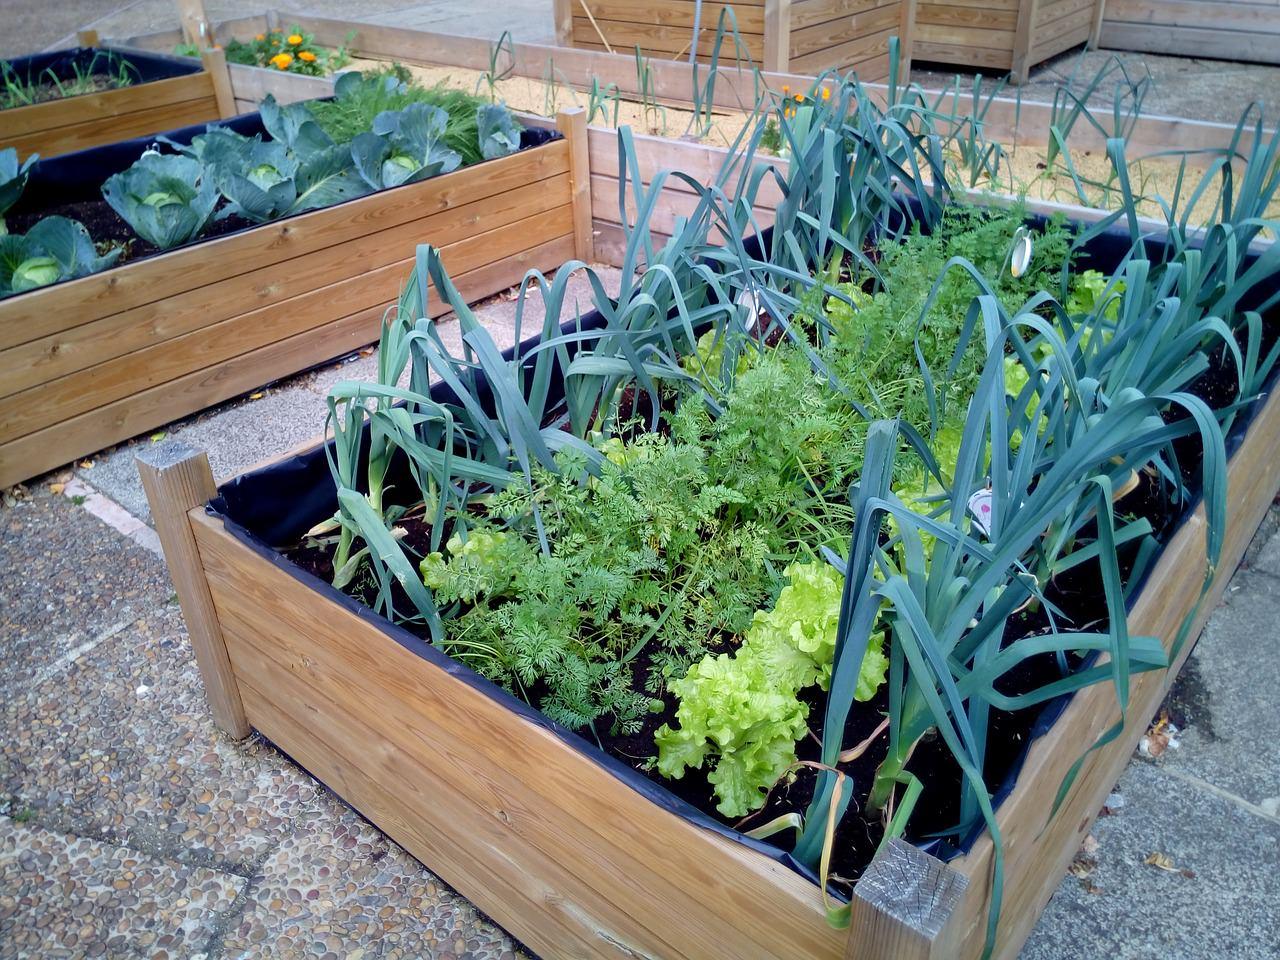 The Starter Guide to Growing Your Own Vegetables